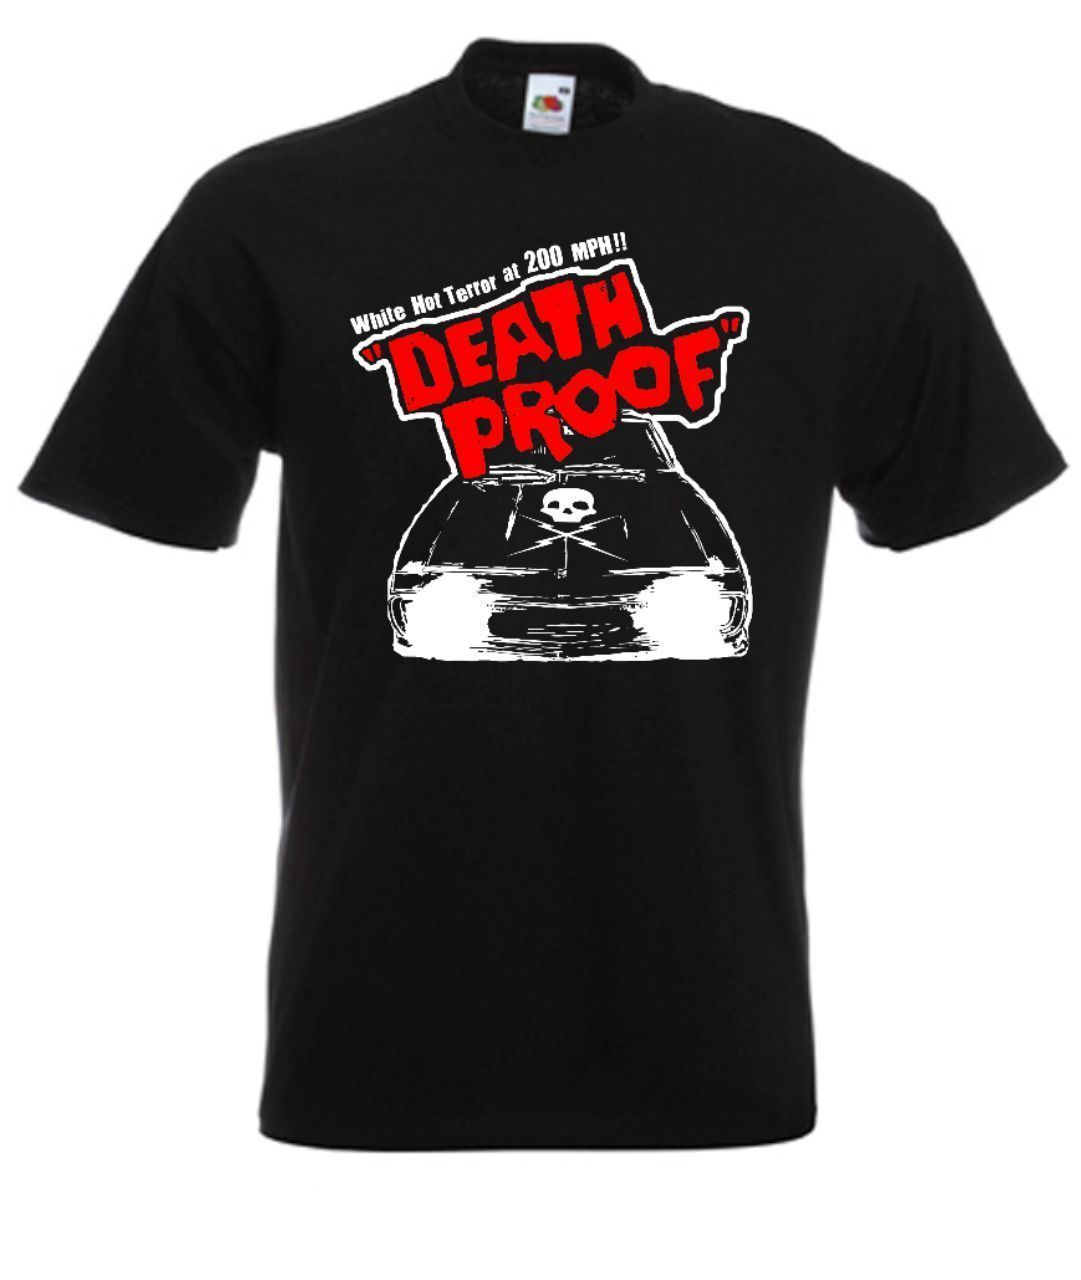 death-proof-quentin-font-b-tarantino-b-font-movie-t-shirt-t-shirt-men-black-short-sleeve-cotton-hip-hop-t-shirt-print-tee-shirts